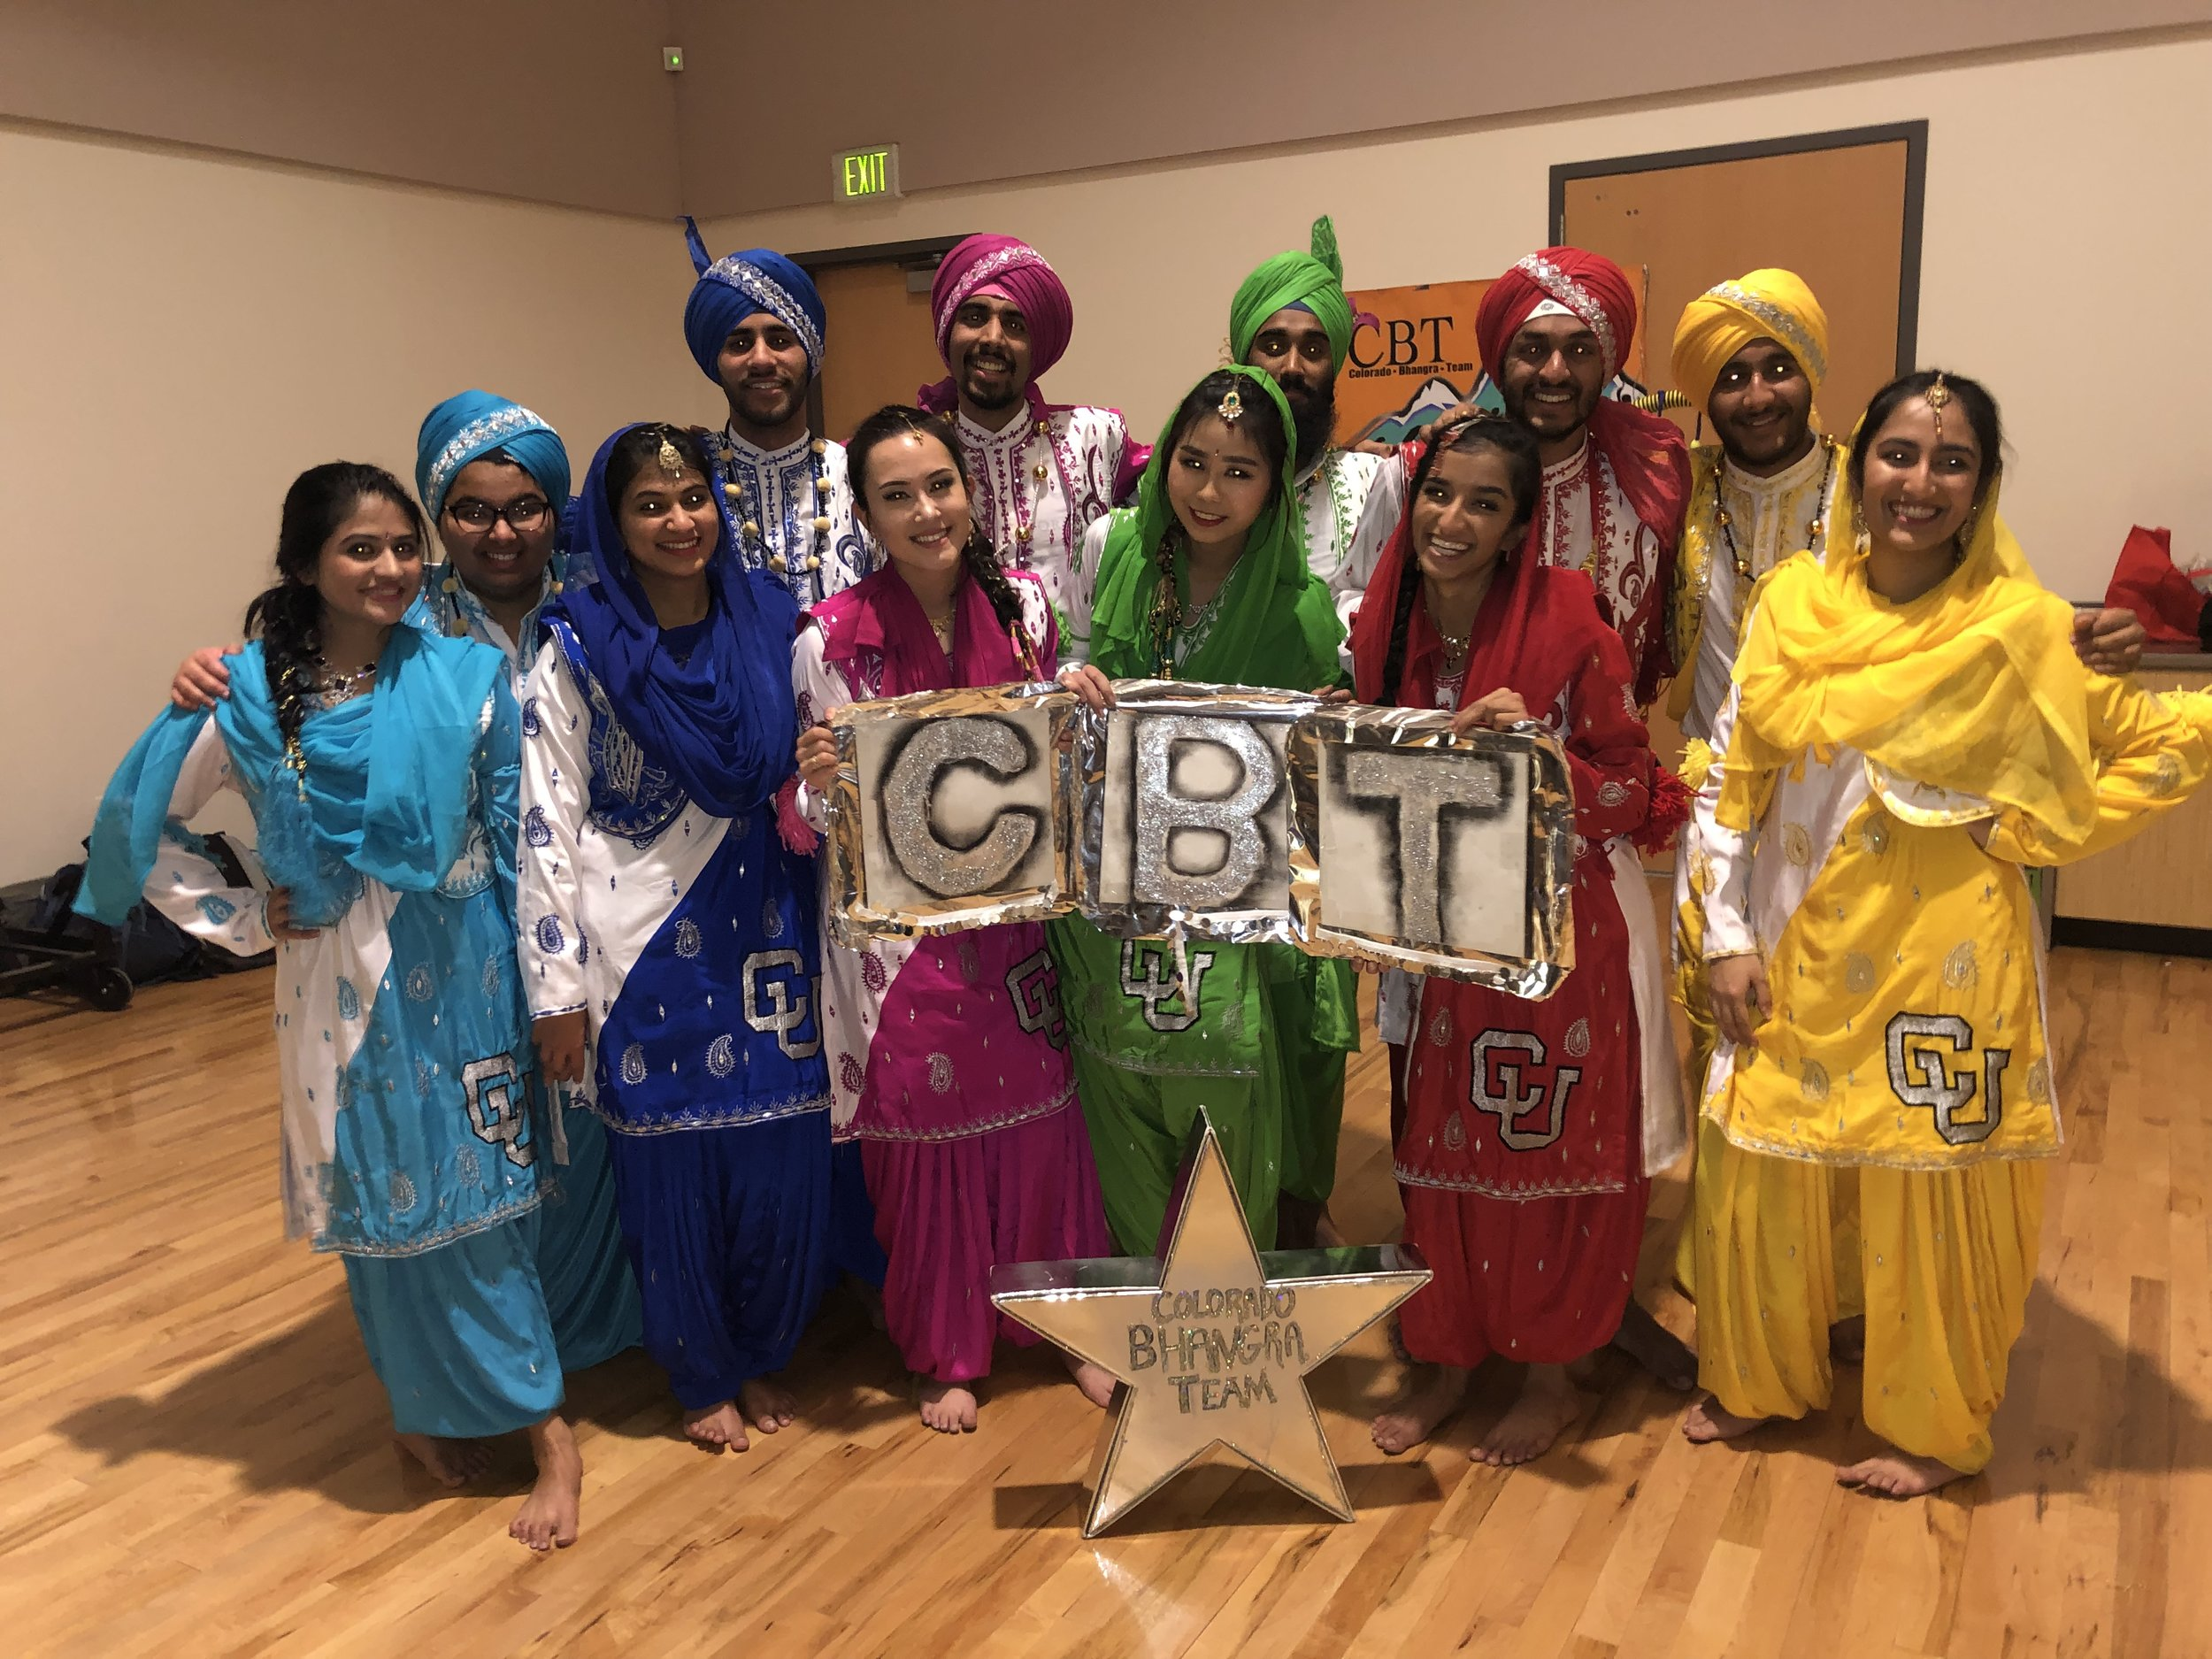 Colorado Bhangra Team   Bhangra is a folk dance that originated in Punjab, India. Traditionally, men wear turbans and women wear the respective 'churi daar or salwaar kaameej'. The dance itself is very exciting, lively, and vibrant. This particular performance has some American pop songs throughout it as well! Truly, this form of dance intends to entertain both the performers and the audience members. Colorado Bhangra is the official Colorado state certified Bhangra (Punjabi Indian folk dance) and nationally competitive team, and the largest Bhangra team on the western slope of the United States! We also hold an annual Bhangra Camp at which we teach the dance form to students from ages 5-60 of all backgrounds and skill levels. Follow us on Instagram and Facebook @coloradobhangra - enjoy the performance!